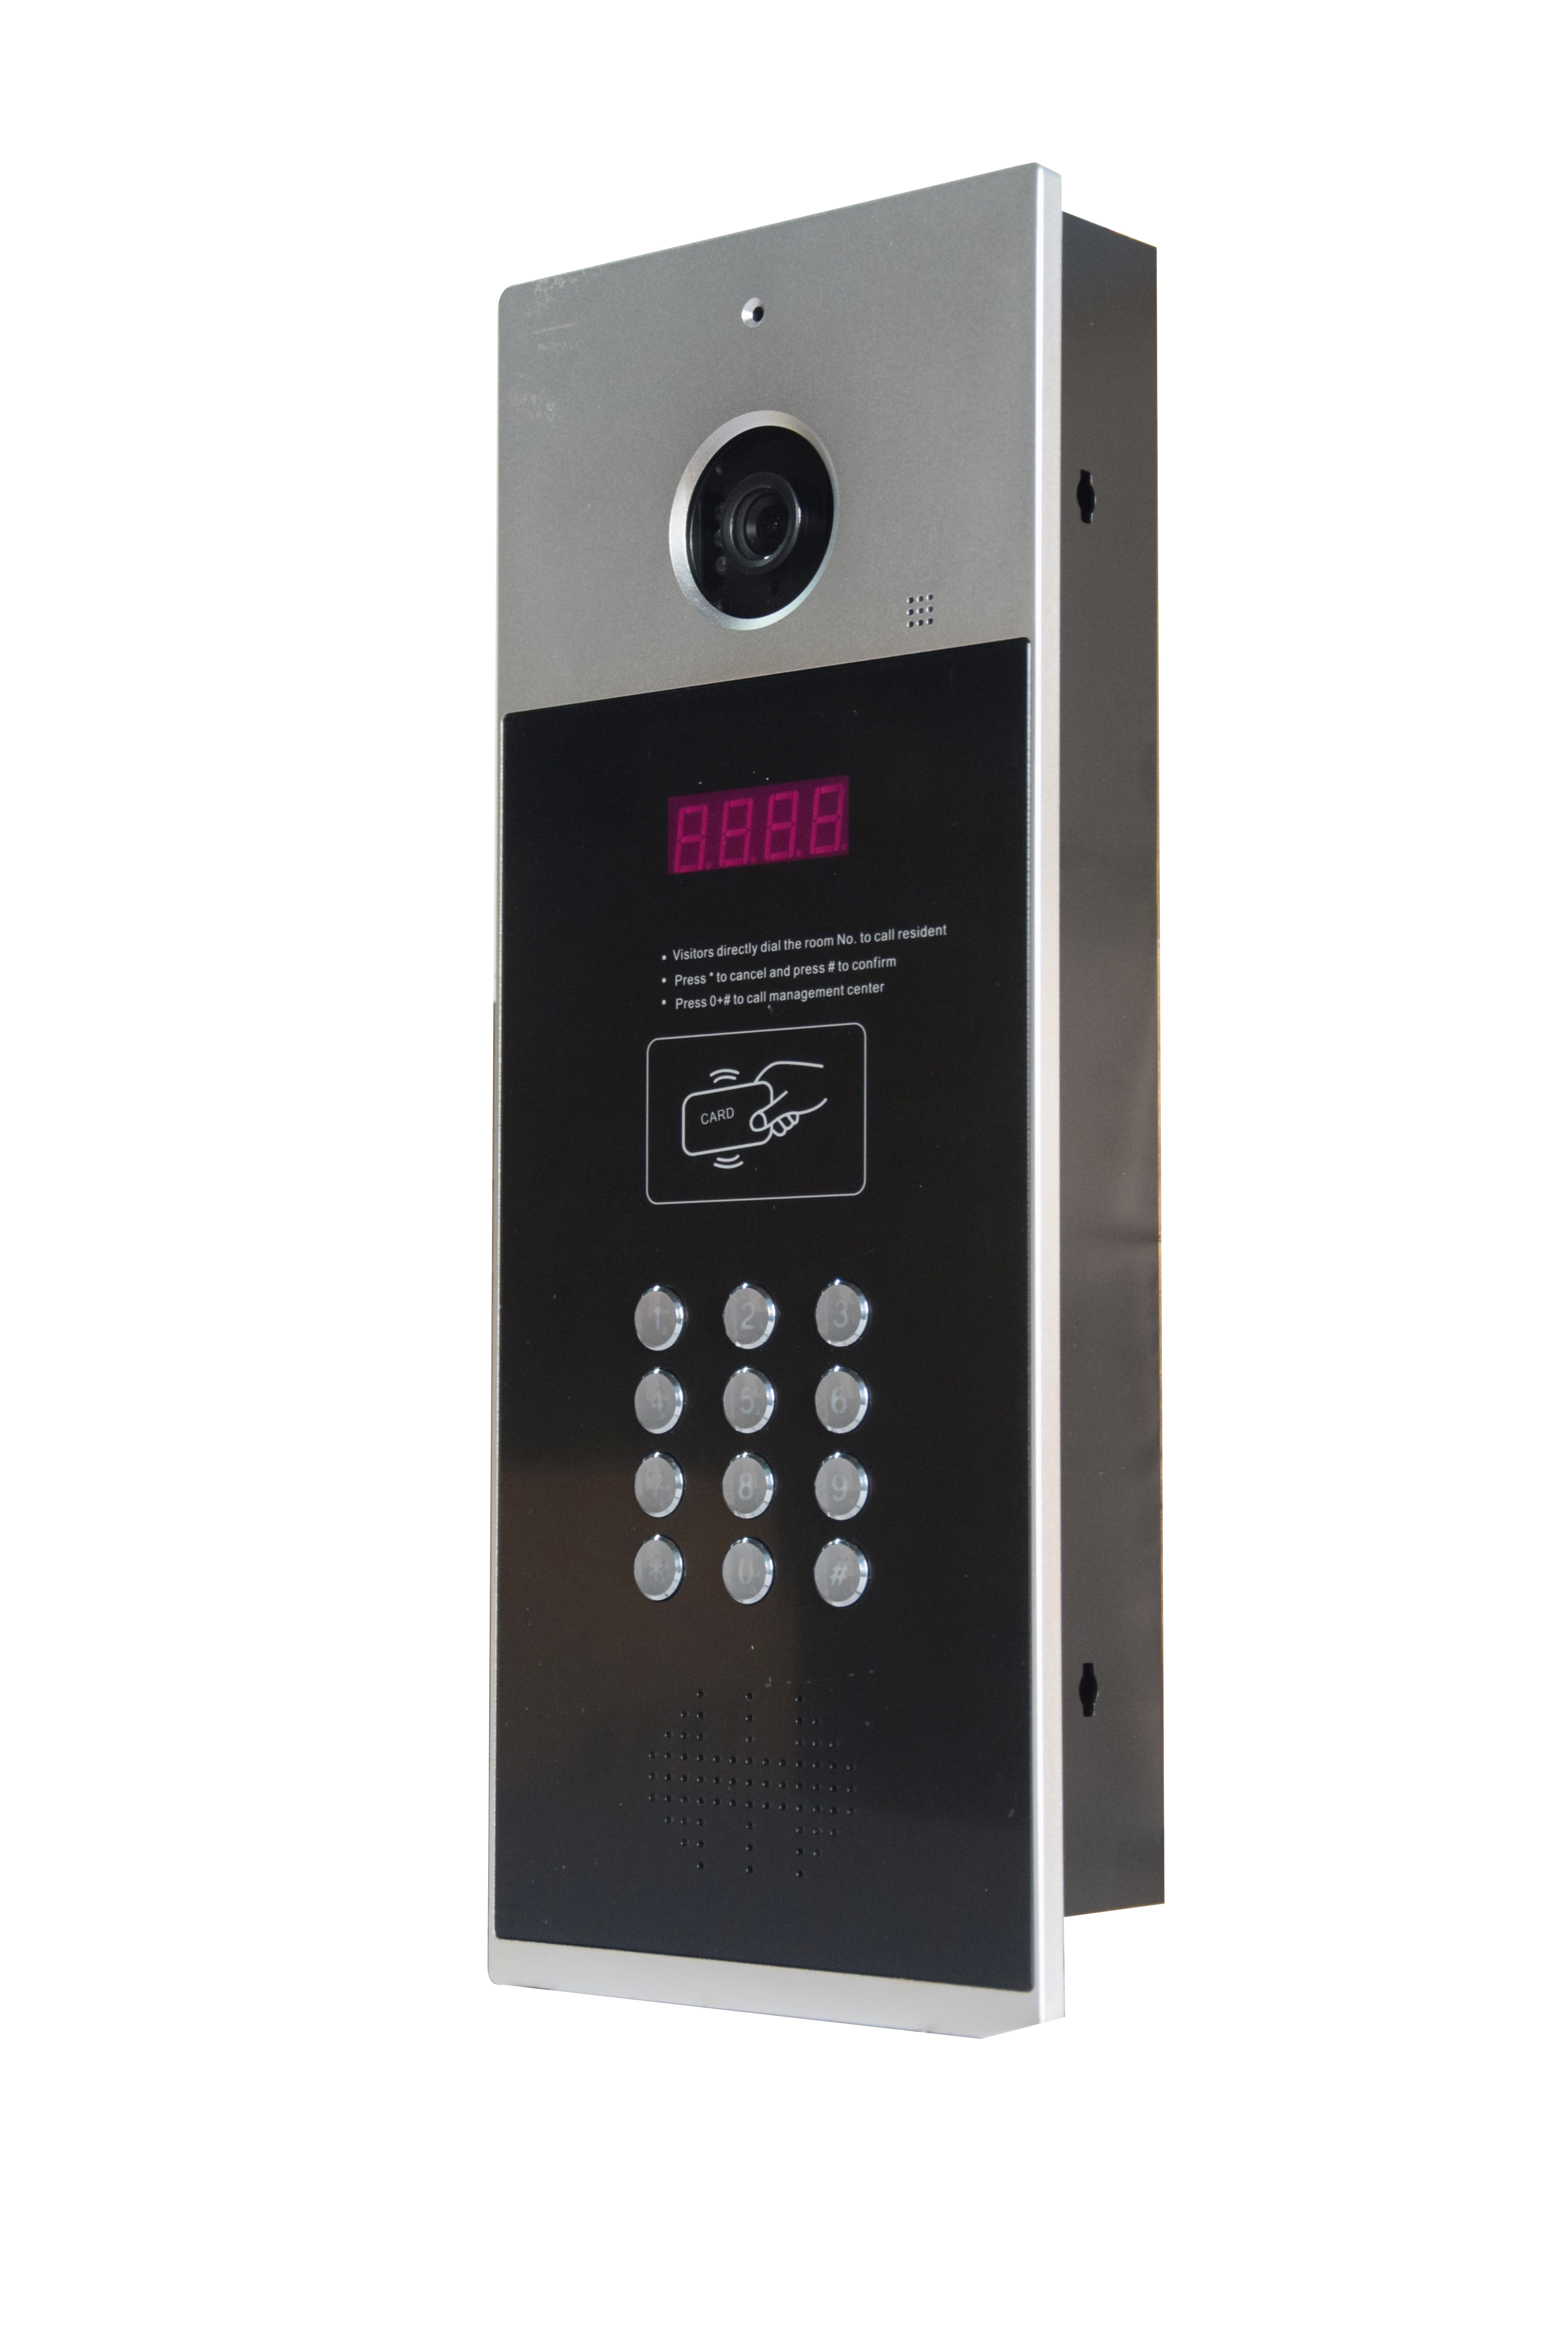 Max for 9999 rooms intercom system